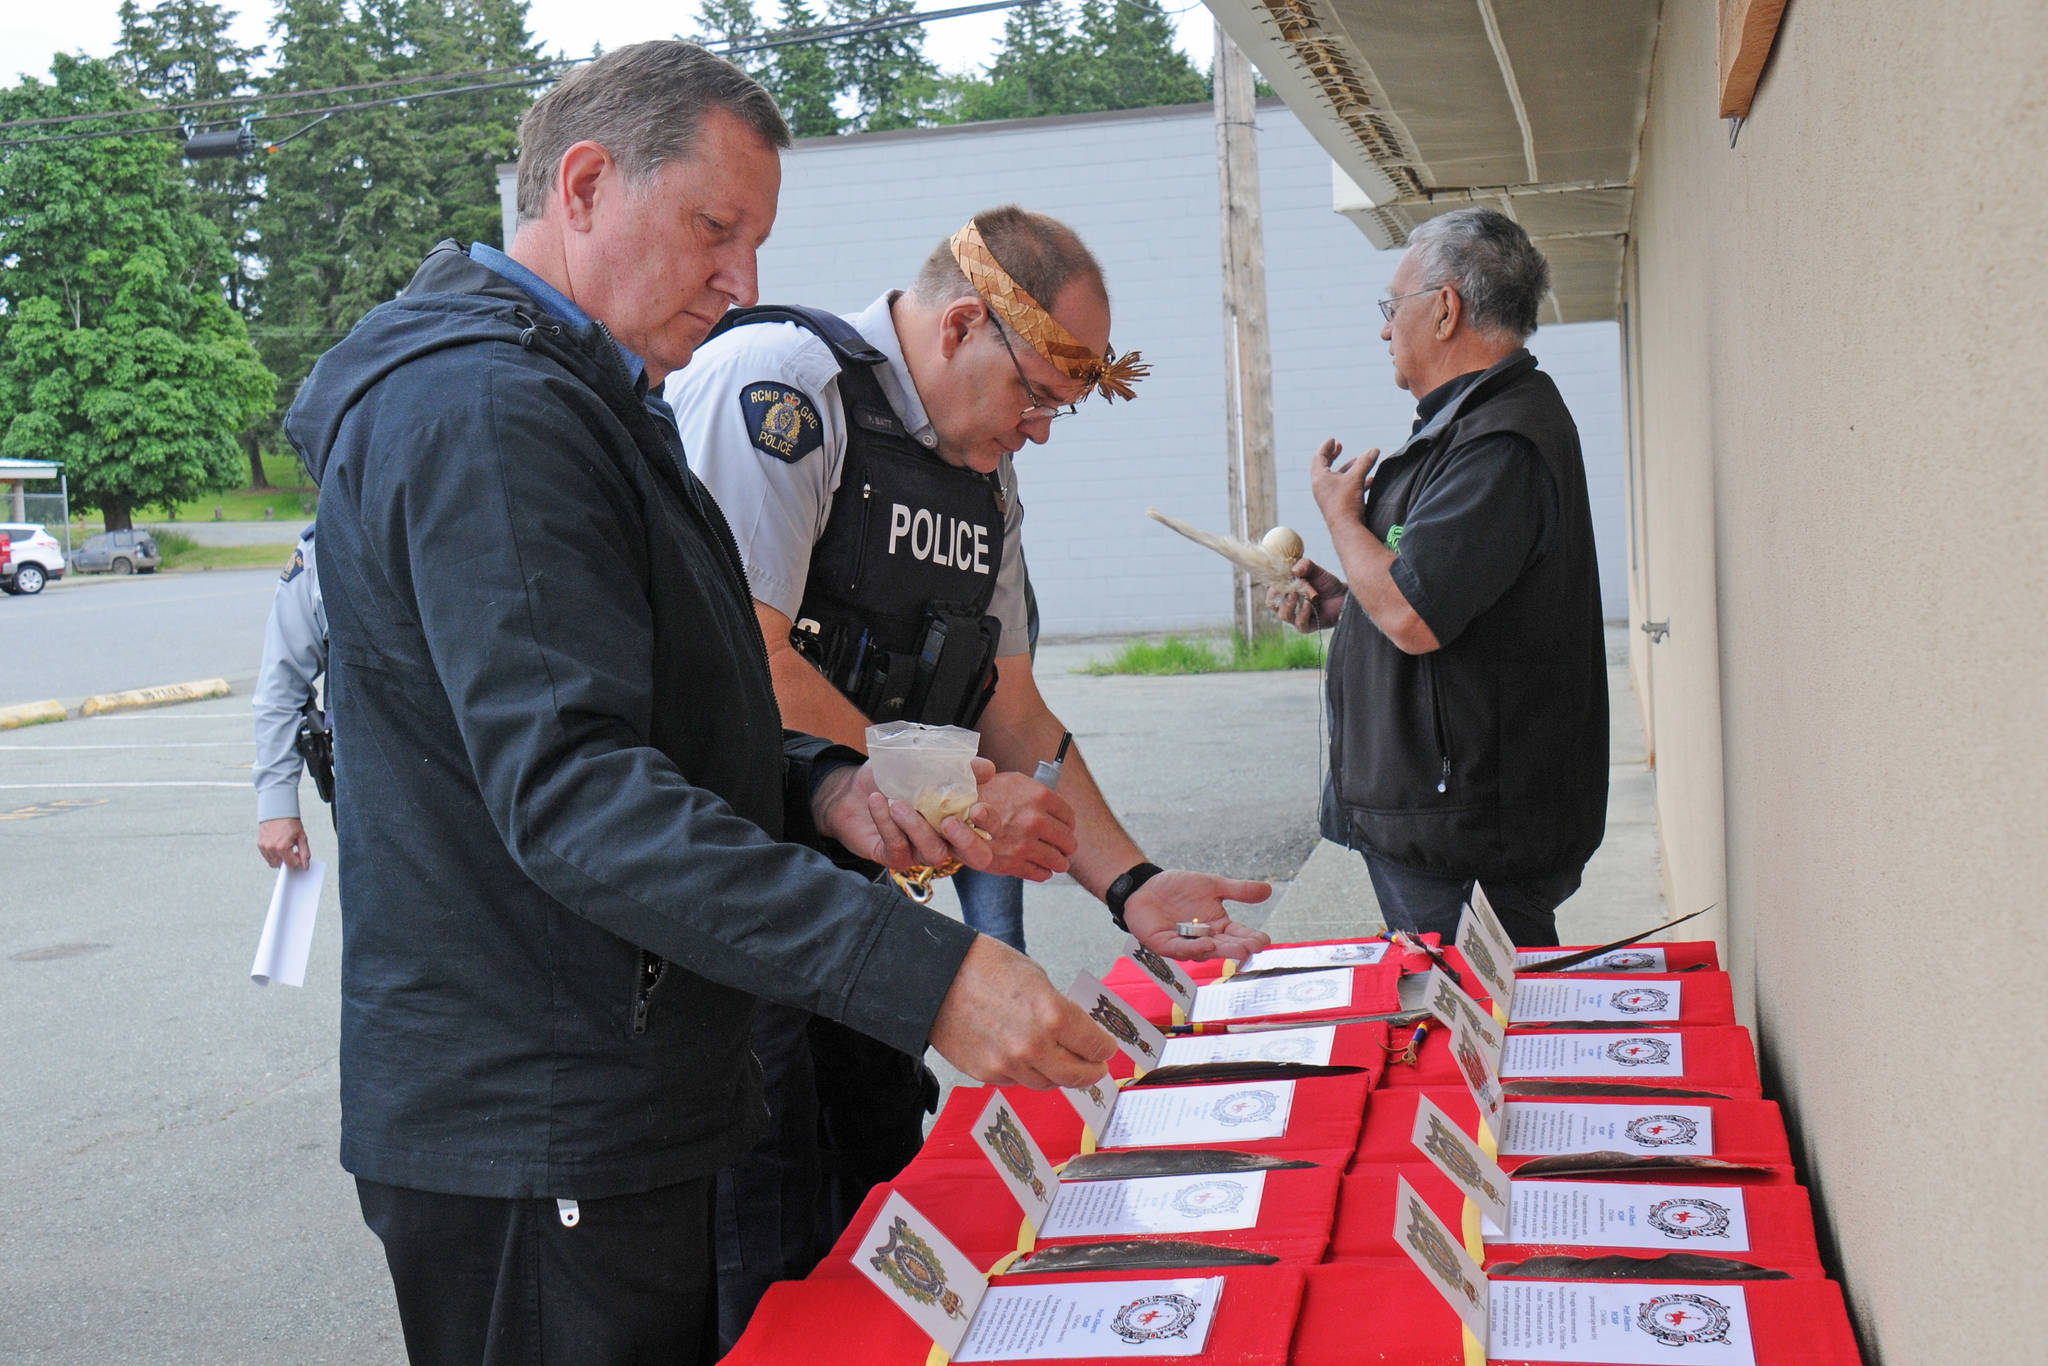 Port Alberni RCMP Acting Officer in Charge Sgt. Peter Dionne, left, sprinkles powdered Devil's Club over the eagle feather folders while RCMP Cst. Pete Batt follows with a candle flame during a blessing ceremony outside the Nuu-chah-nulth Quu?asa Program building on Third Avenue, Friday, June 5, 2020. Quu?asa cultural worker Joseph Tom, right, waits to say a prayer over the folders. (SUSAN QUINN/ Alberni Valley News)